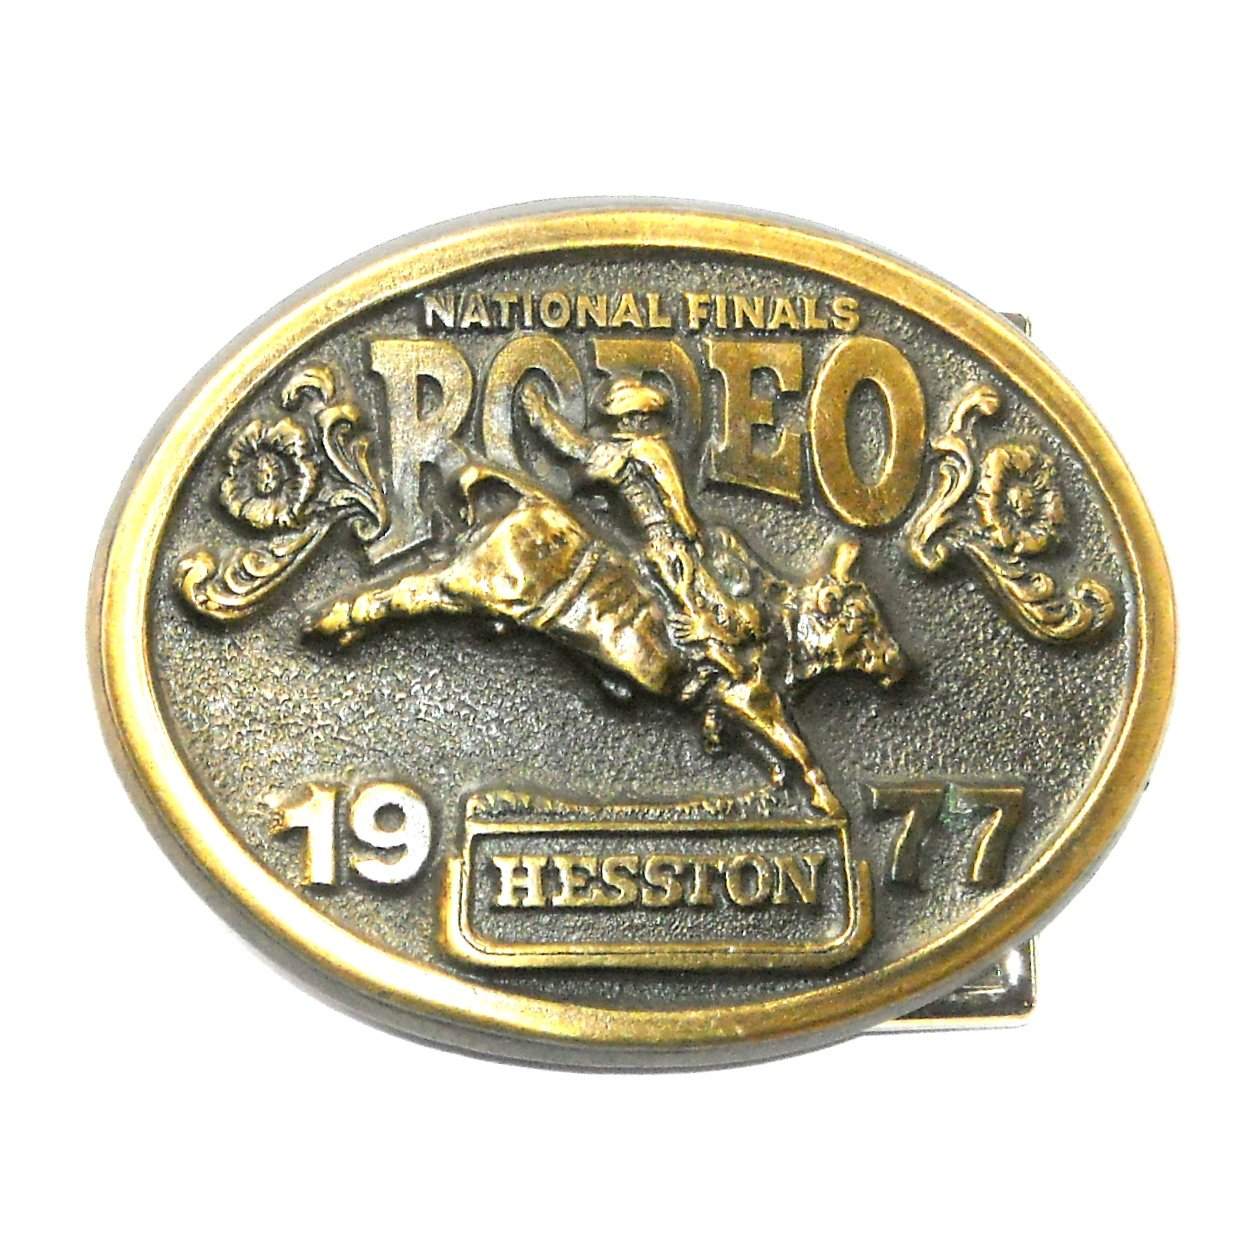 NFR Hesston 1977 National Finals Rodeo 3D Brass Belt Buckle